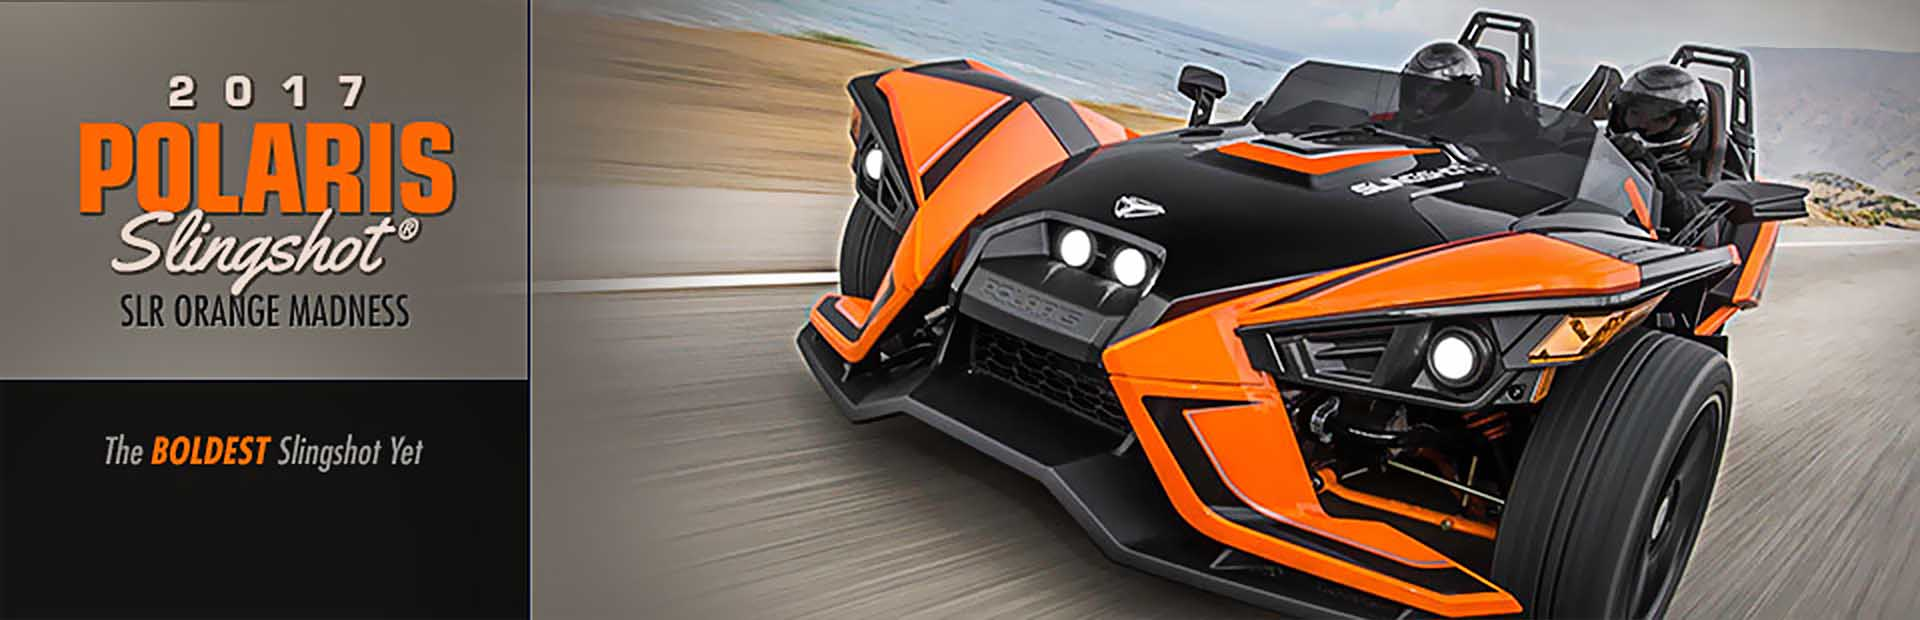 2017 Polaris Slingshot® SLR Orange Madness: Click here to view the model.